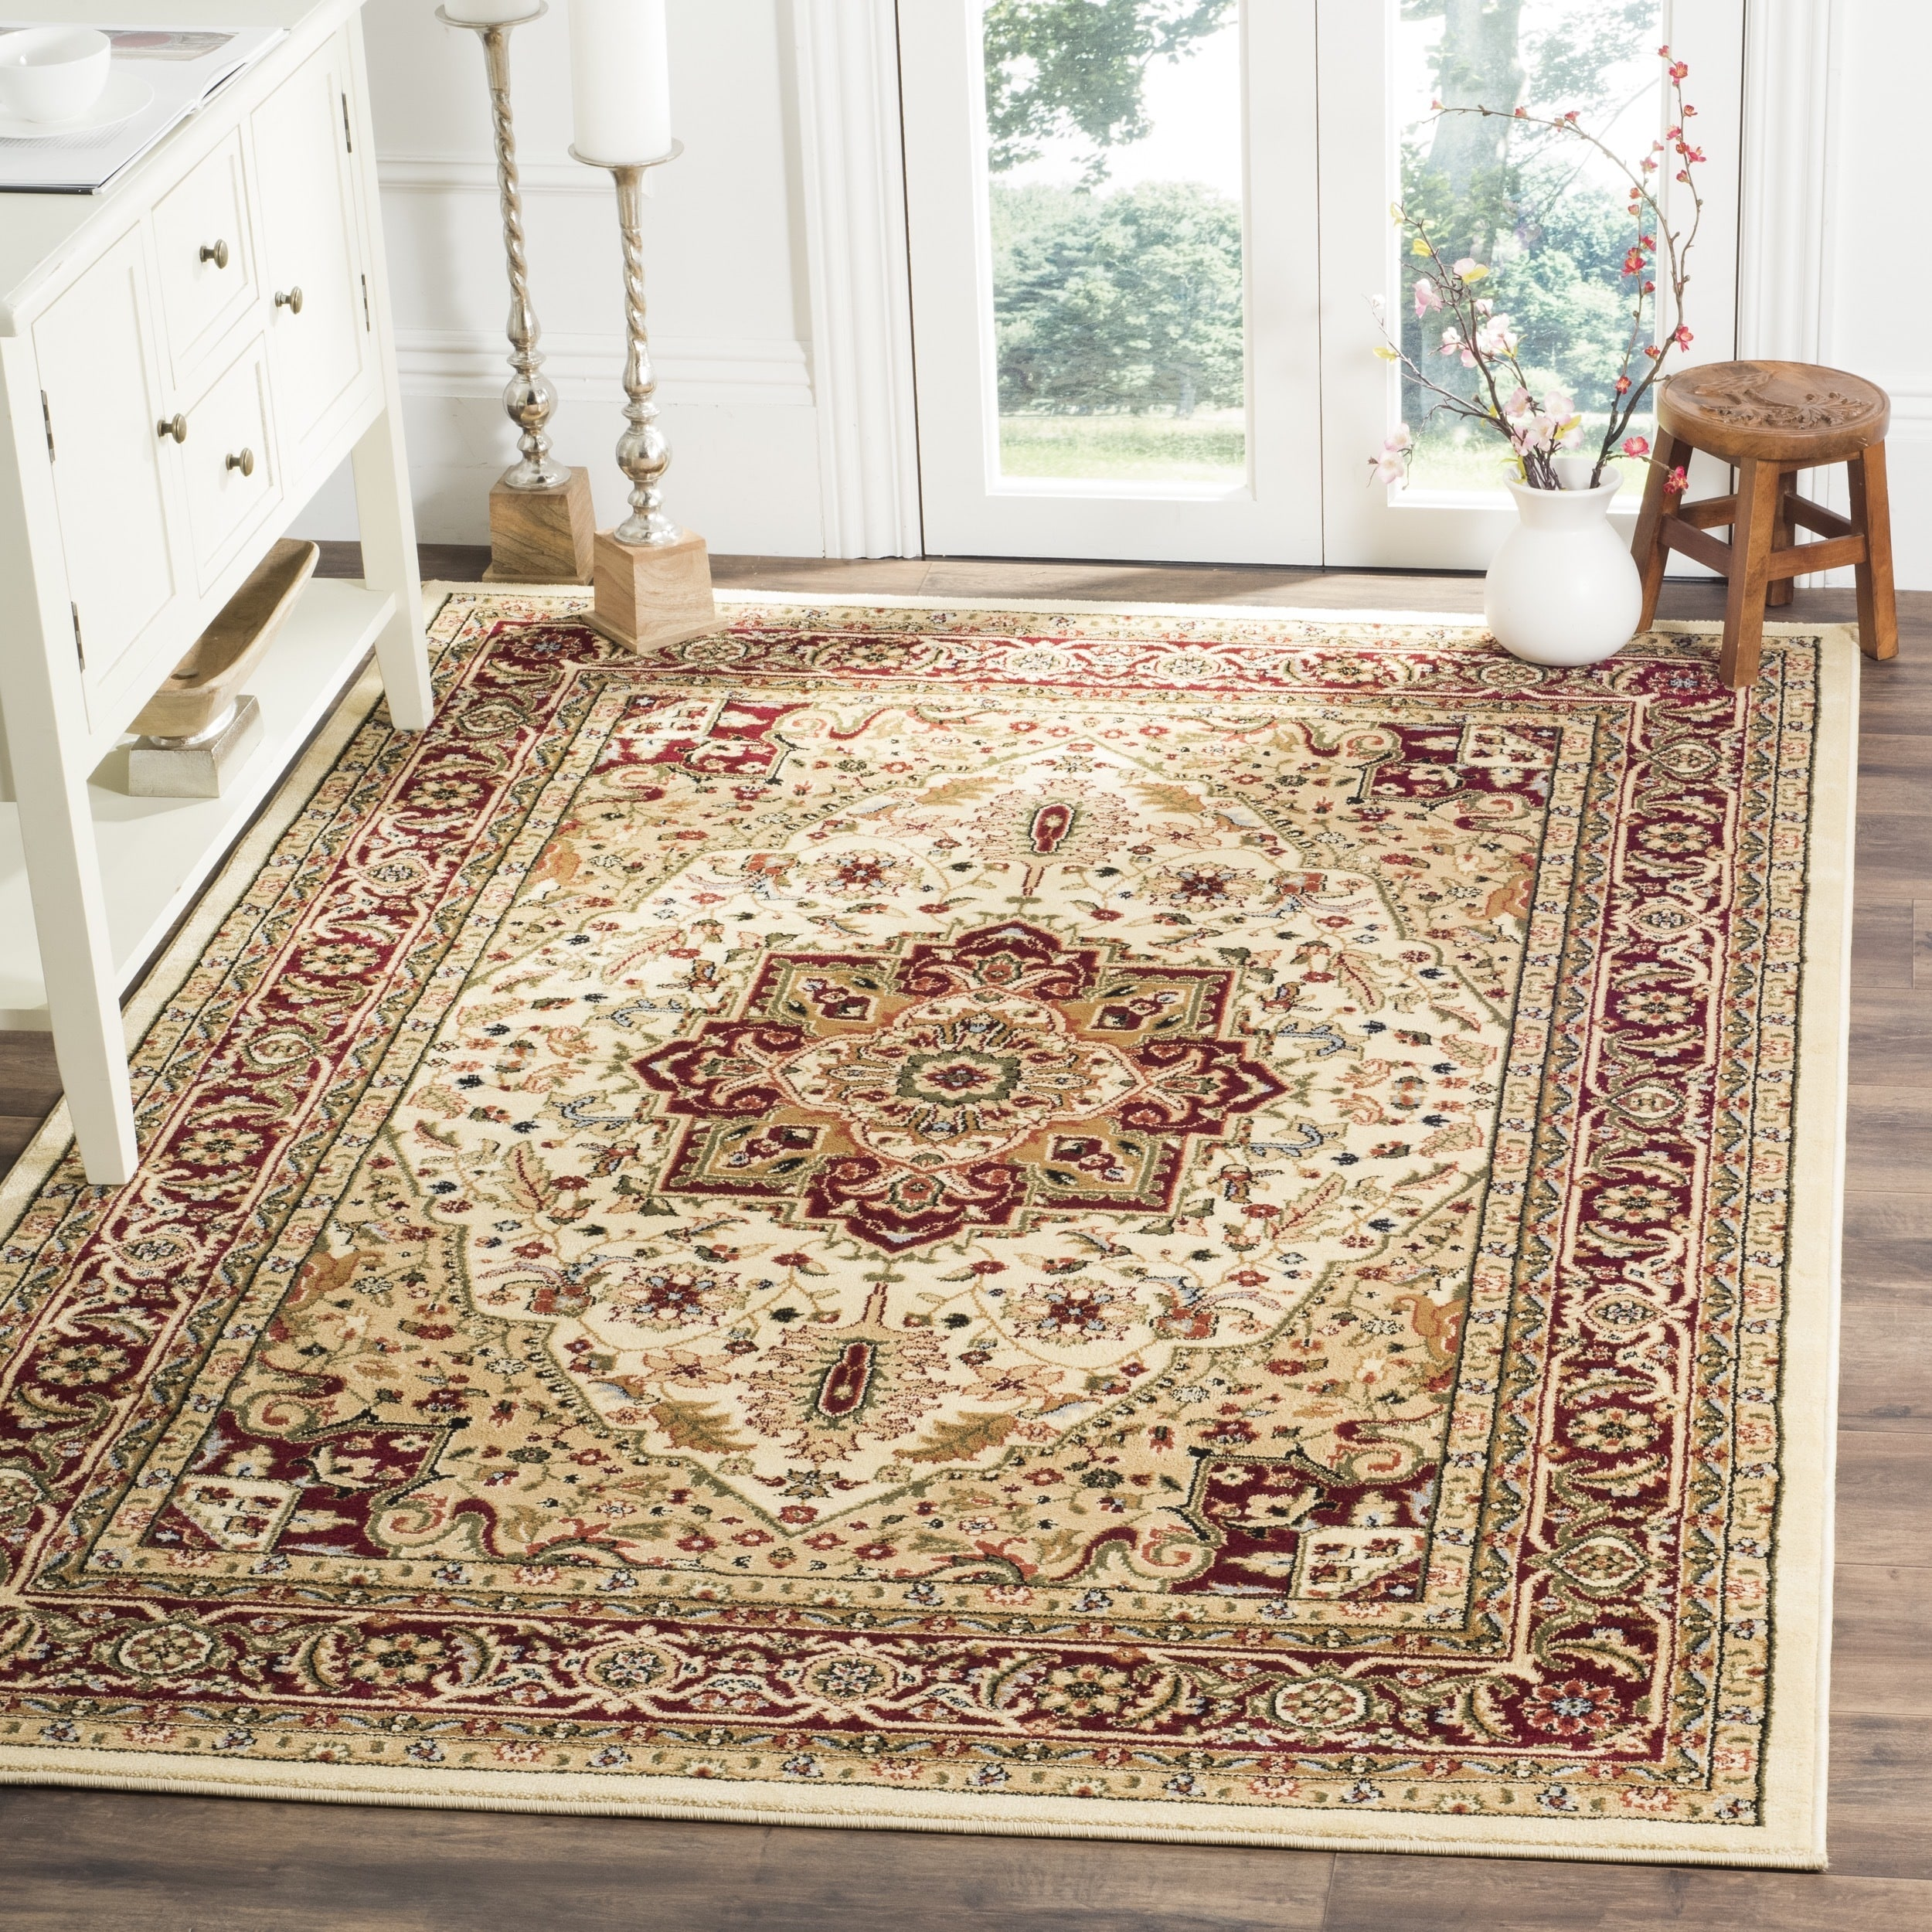 Safavieh Lyndhurst Traditional Oriental Ivory/ Red Area Rug (4' x 6') -  Free Shipping Today - Overstock.com - 12913240